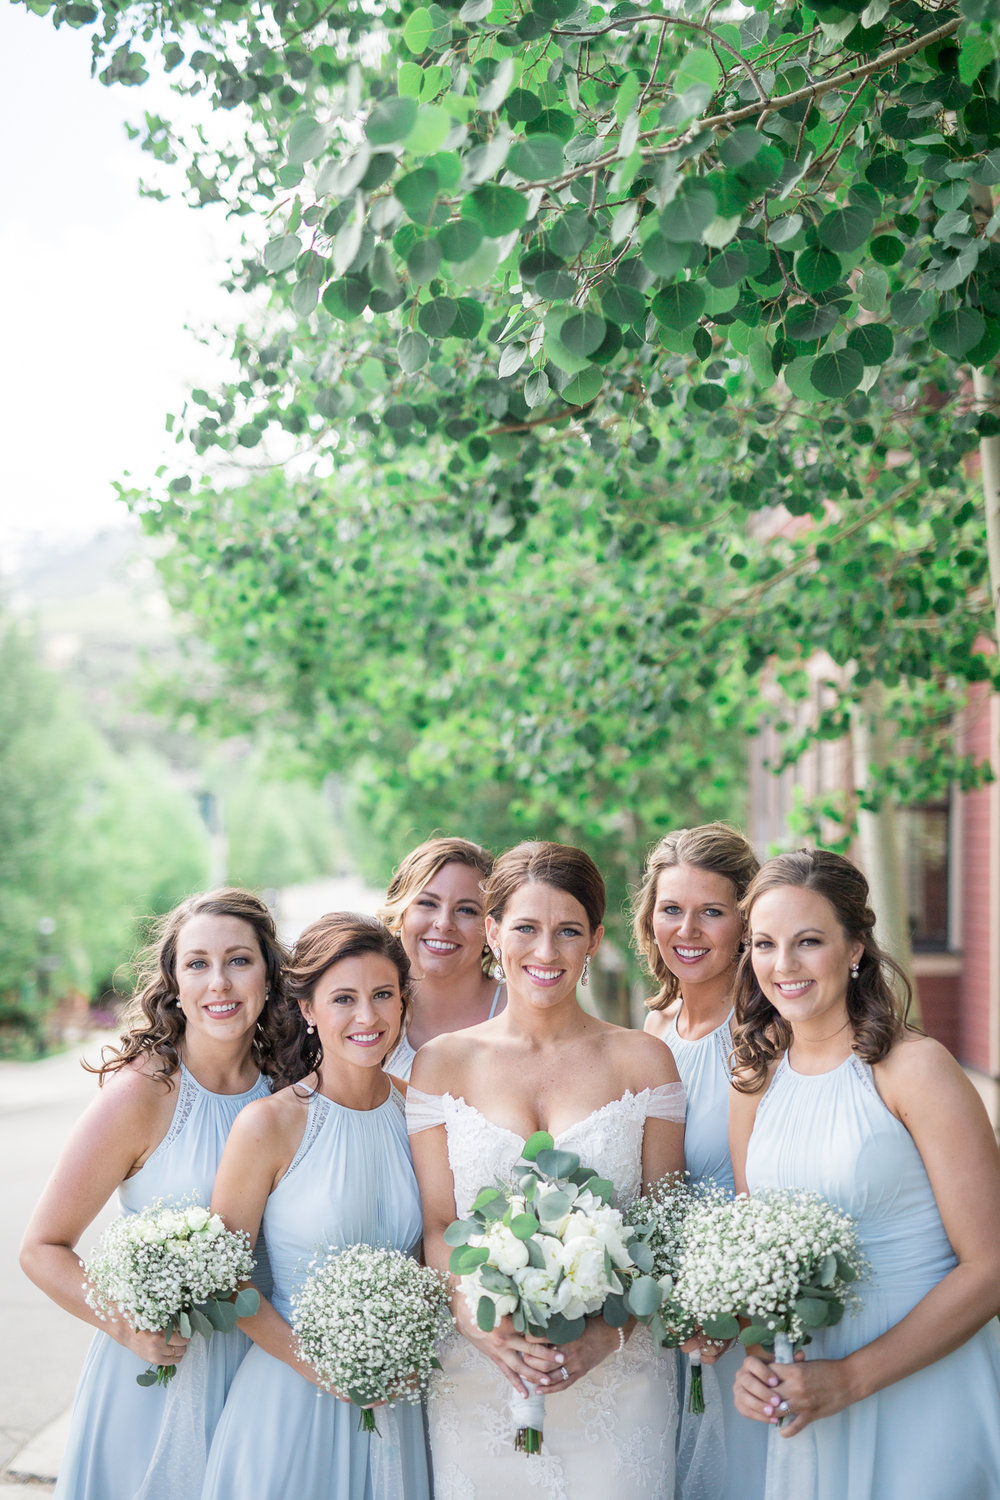 StaciDesign-Colorado-Wedding-4820.jpg